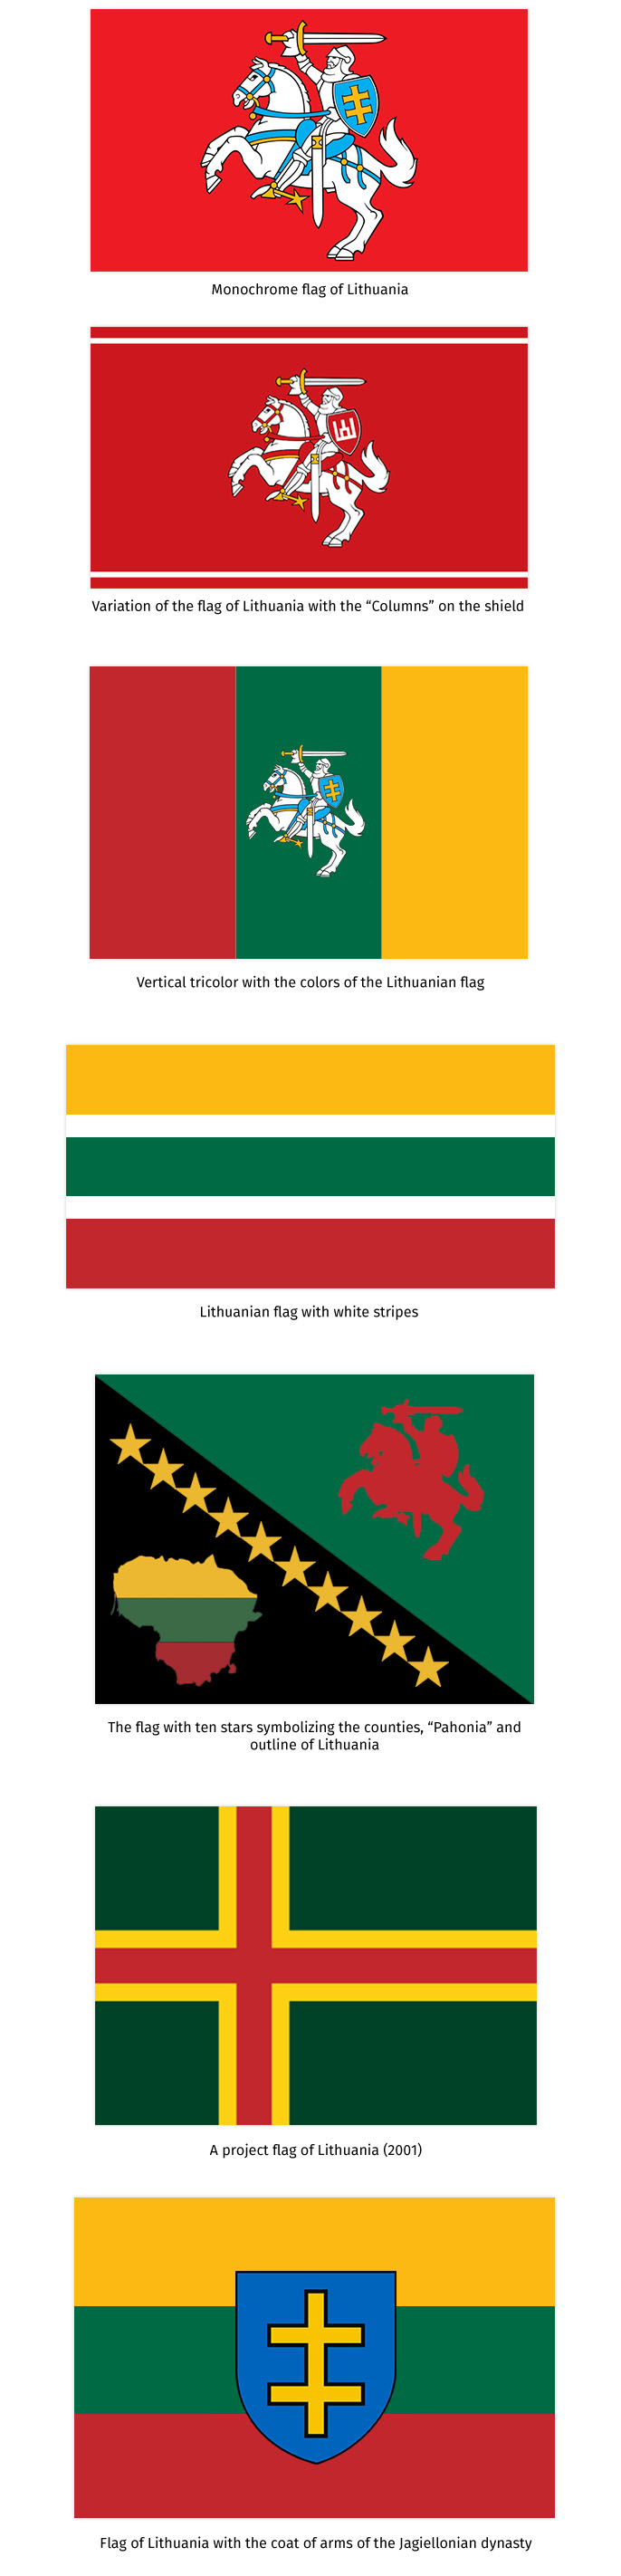 en69-flag-of-lithuania-on-the-way-to-the-formation-of-lithuanian-statehood_27